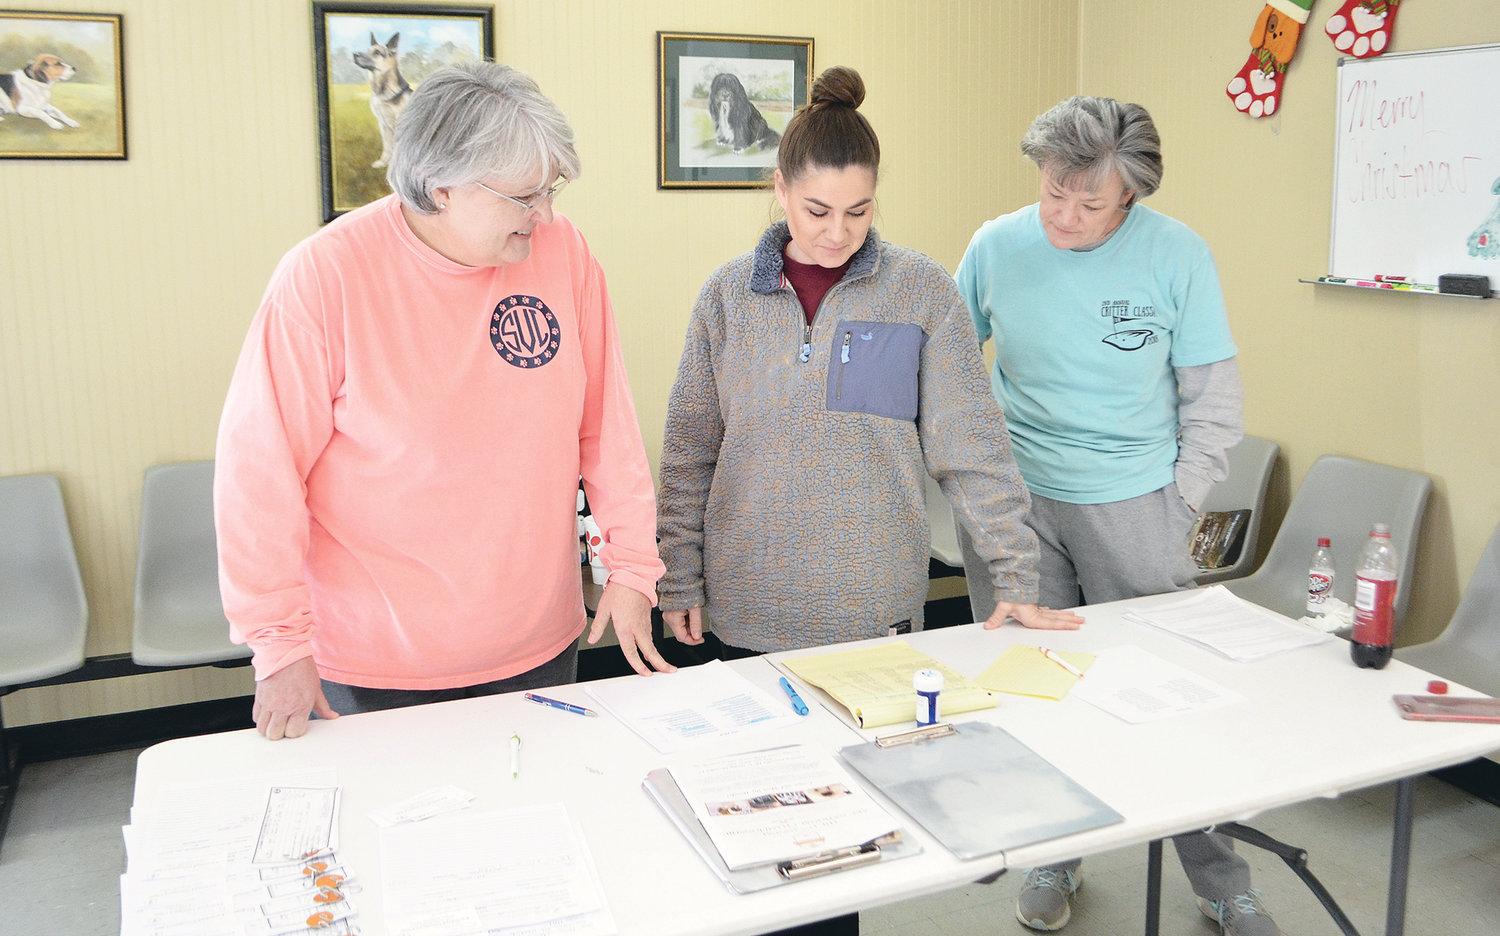 Pictured, from left to right, is Walker County Humane Society Board Director Susie Vann and WCHS board members Amber Stockman and Dee O'Mary going over paperwork for a recent spay and neuter clinic sponsored by the animal rescue organization.